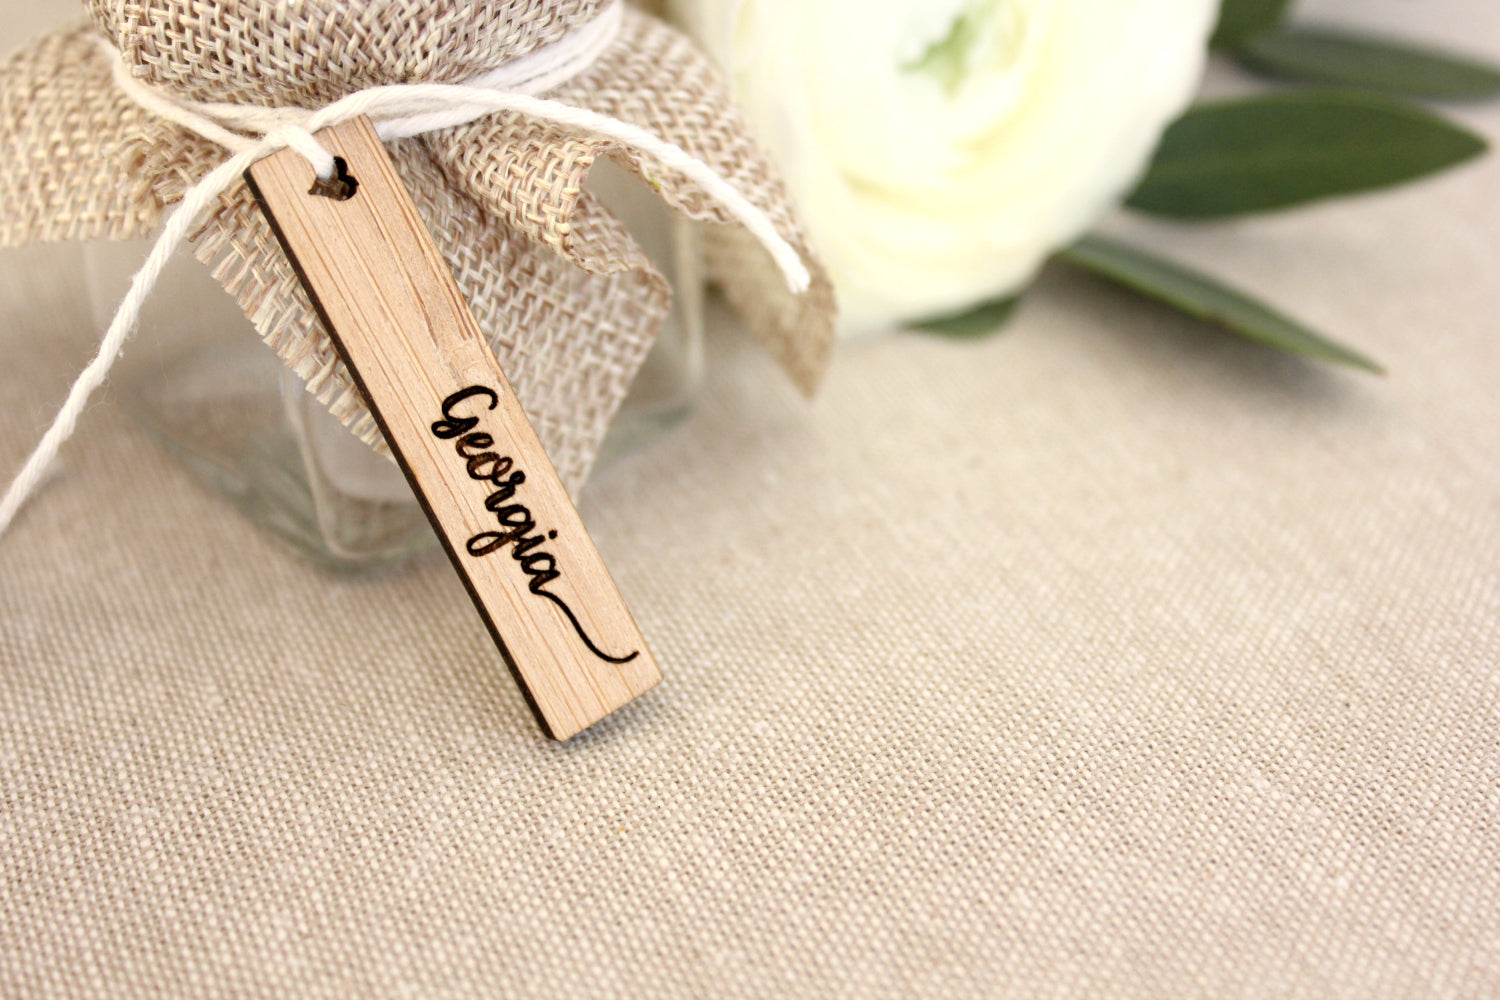 Gift and name tags - One Happy Leaf